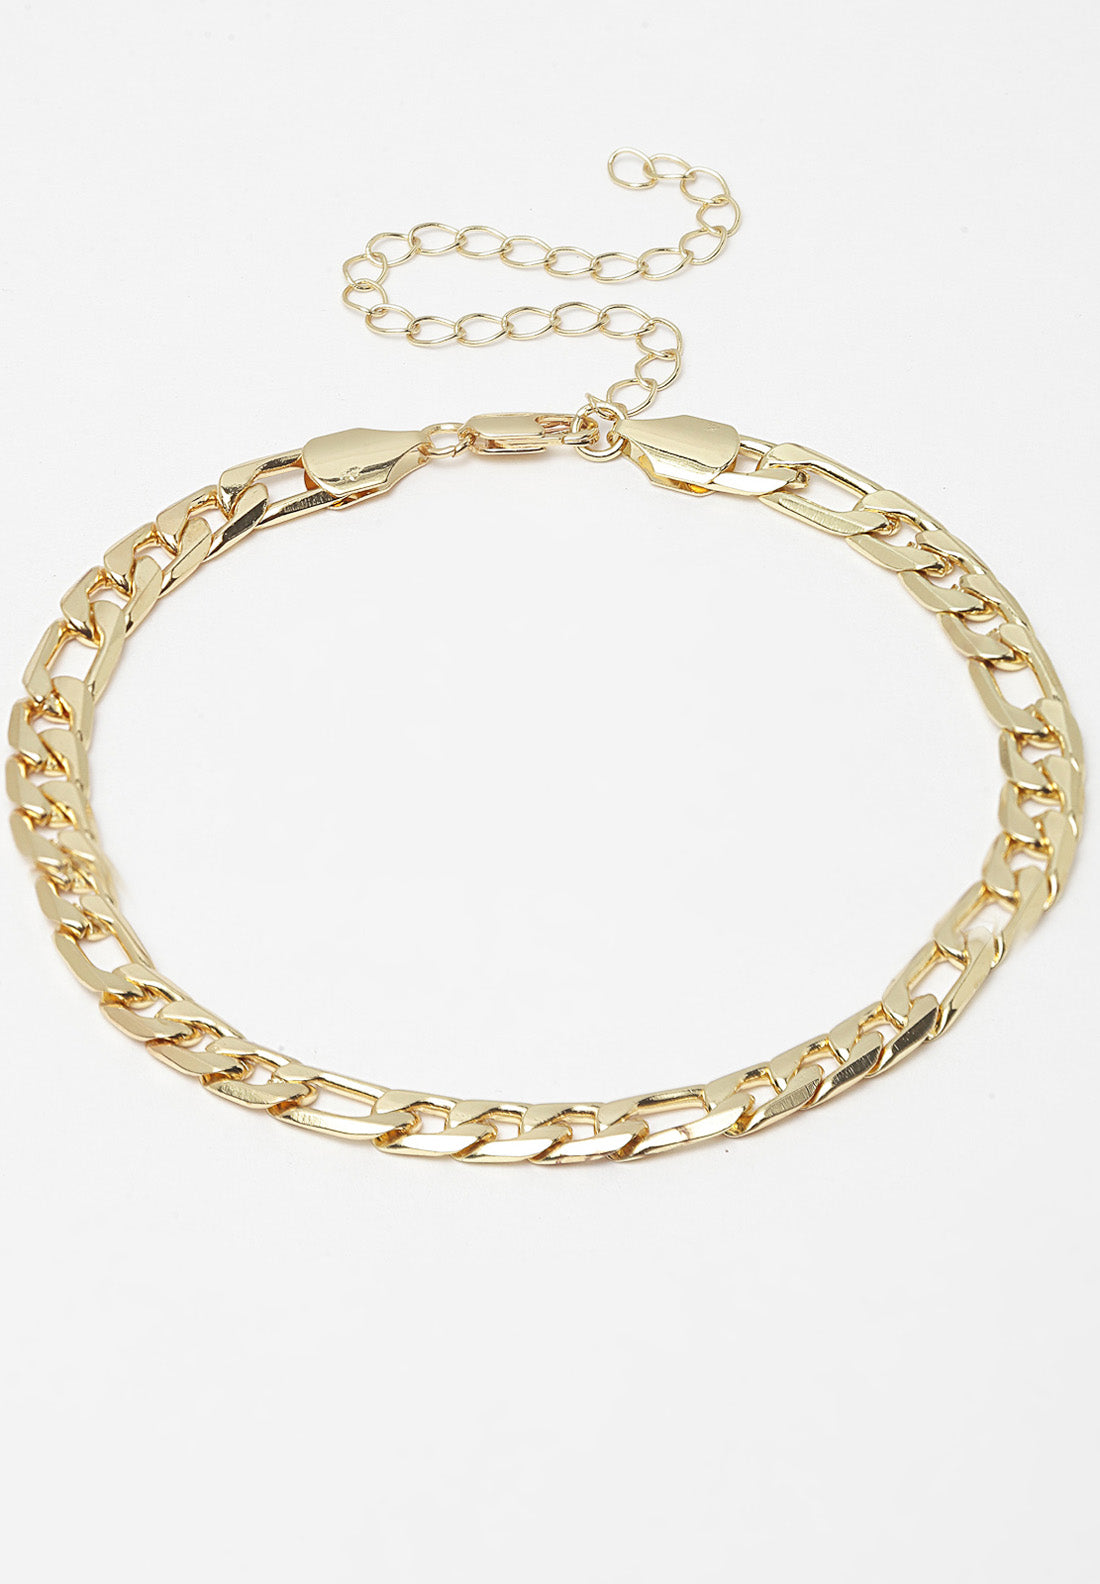 Avant-Garde Paris Gold Plated Chain Bracelet